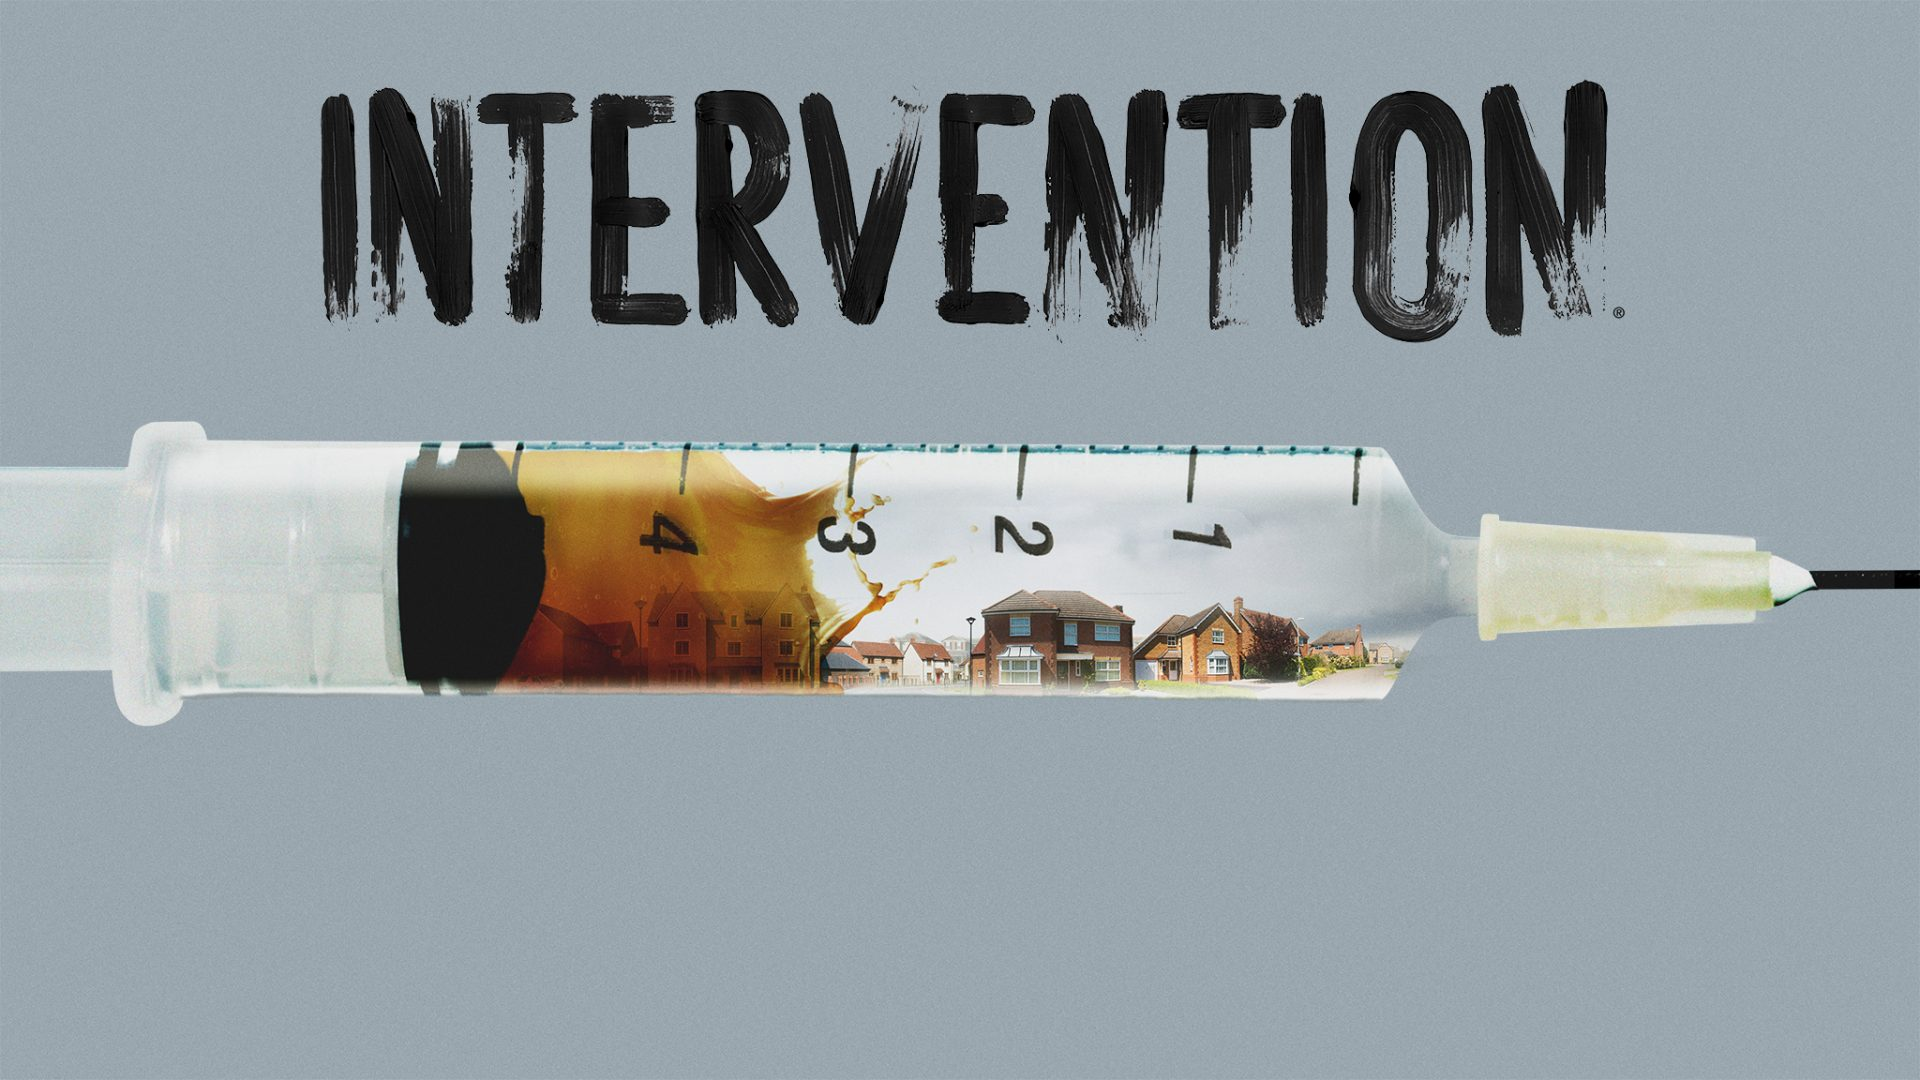 Intervention | Vite Drogate